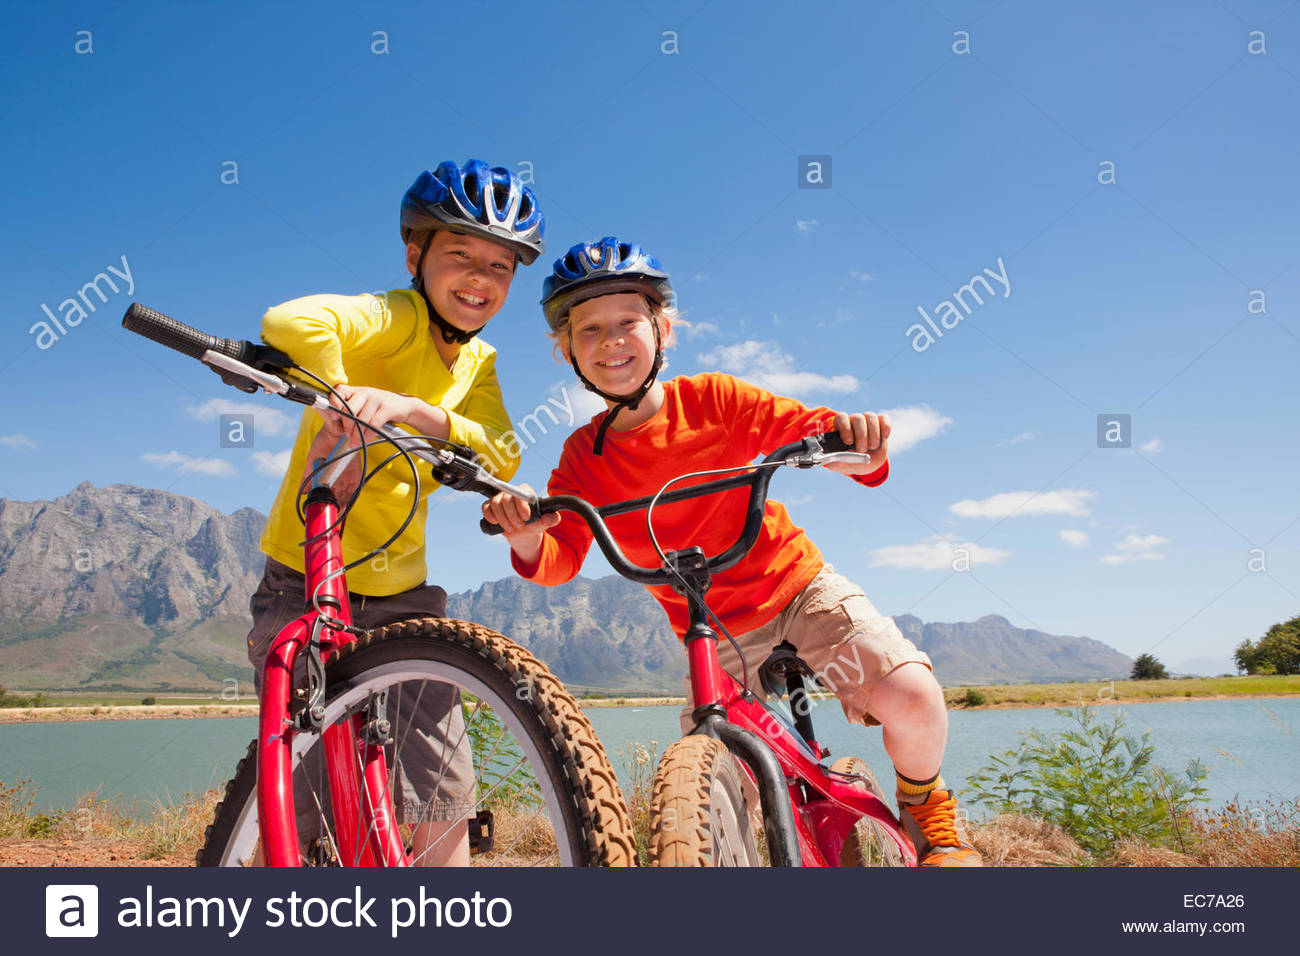 Portrait of children on mountain bikes by lake - Stock Image